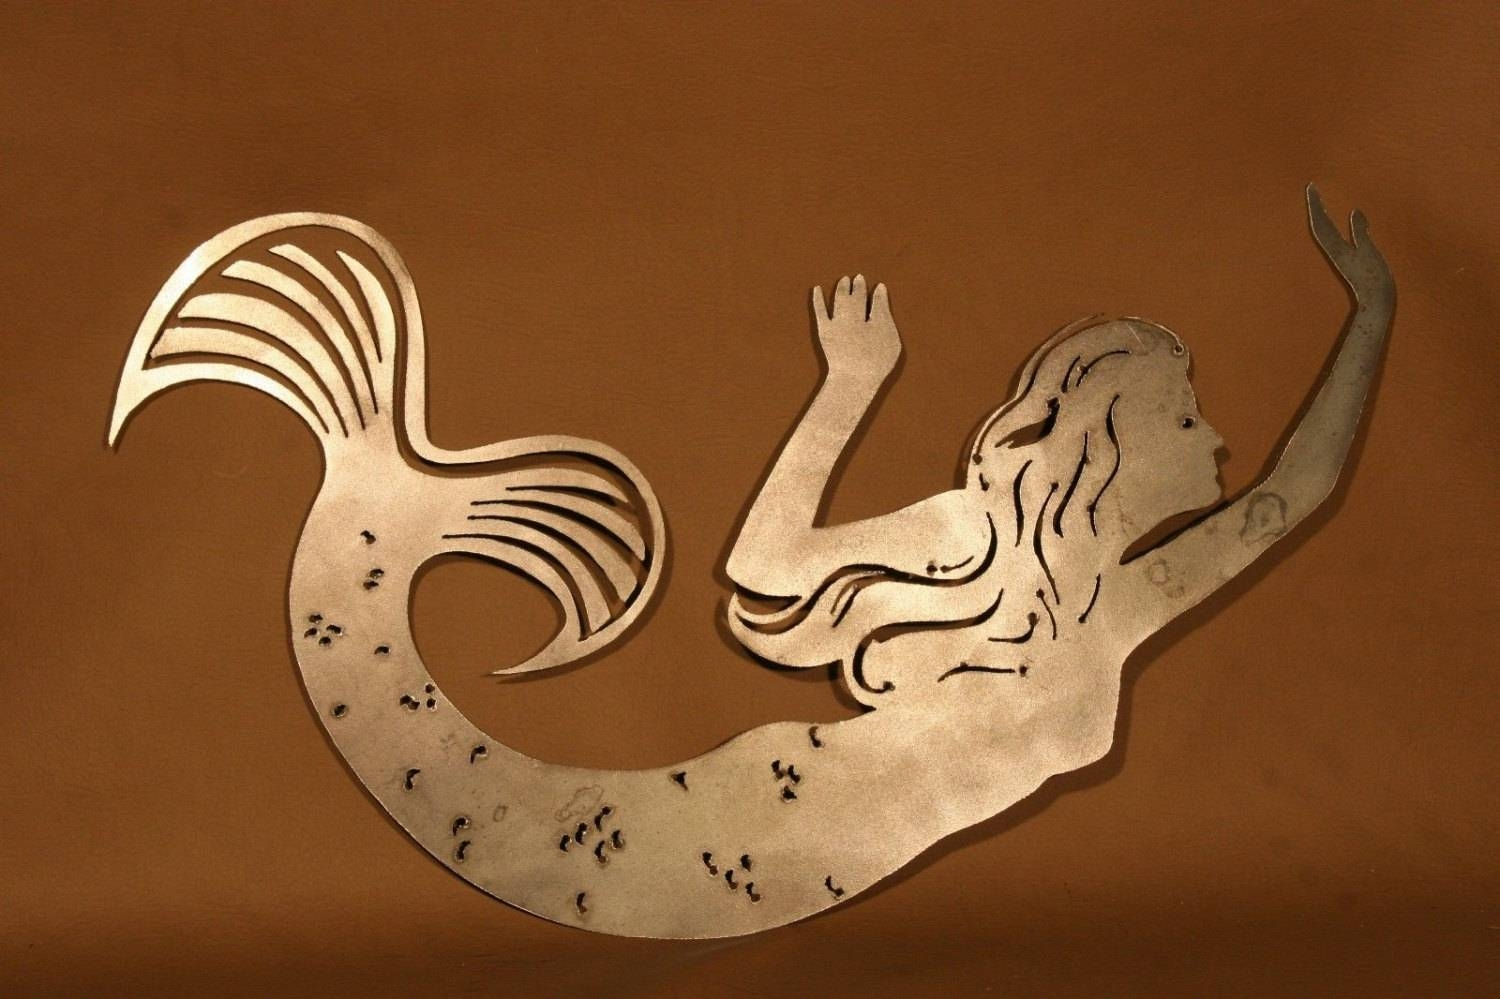 Mermaid Plasma Cut Metal Wall Art Hanging Home Decor Beach Intended For Most Recently Released Mermaid Metal Wall Art (View 15 of 20)